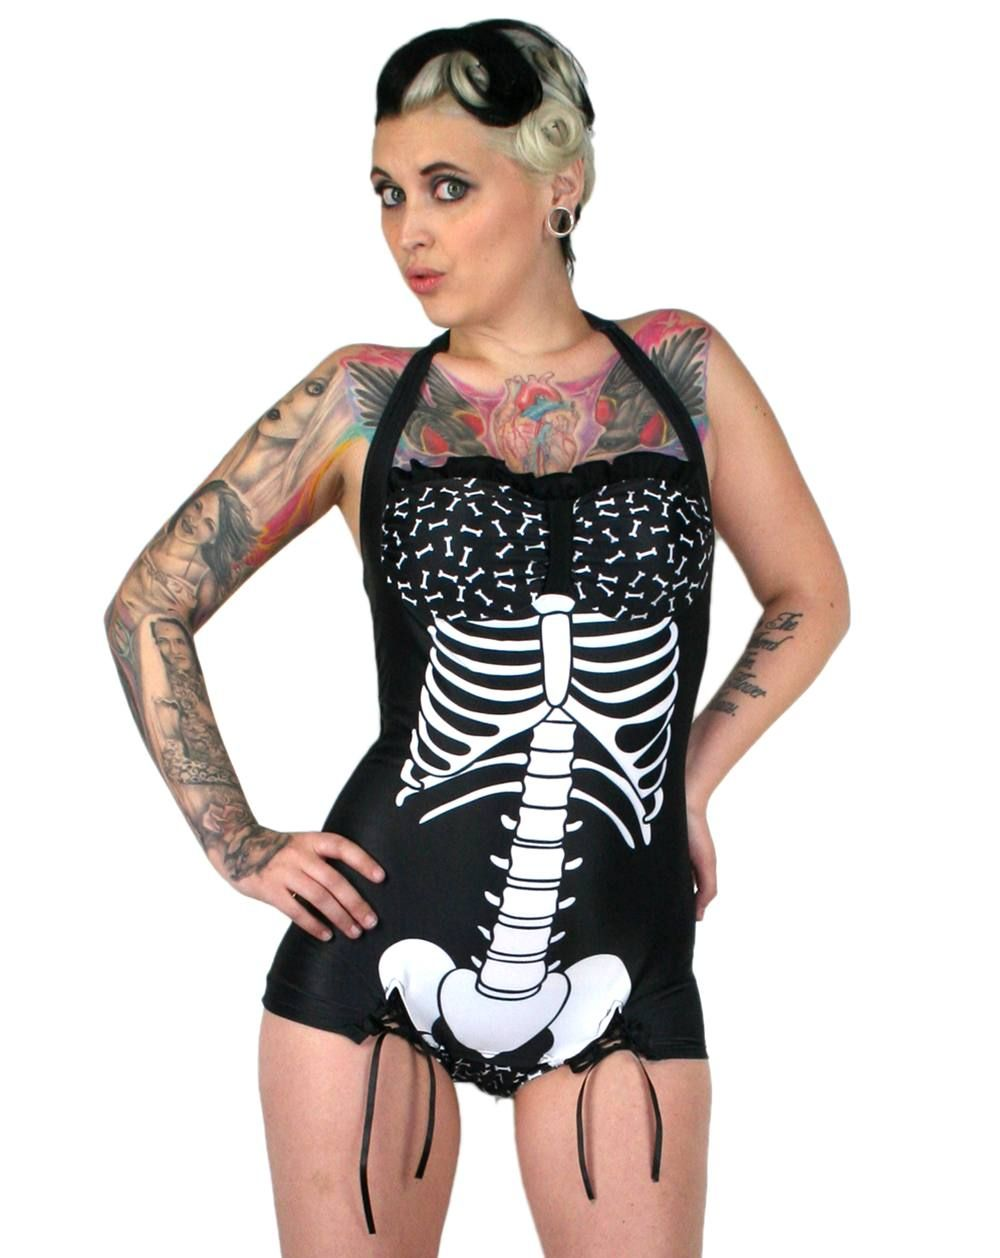 Retro Style Bathing Suits Part - 25: Mandy Bones Skeleton X Ray Vintage Style Swimsuit Bathing Suit Gothic Punk  | EBay